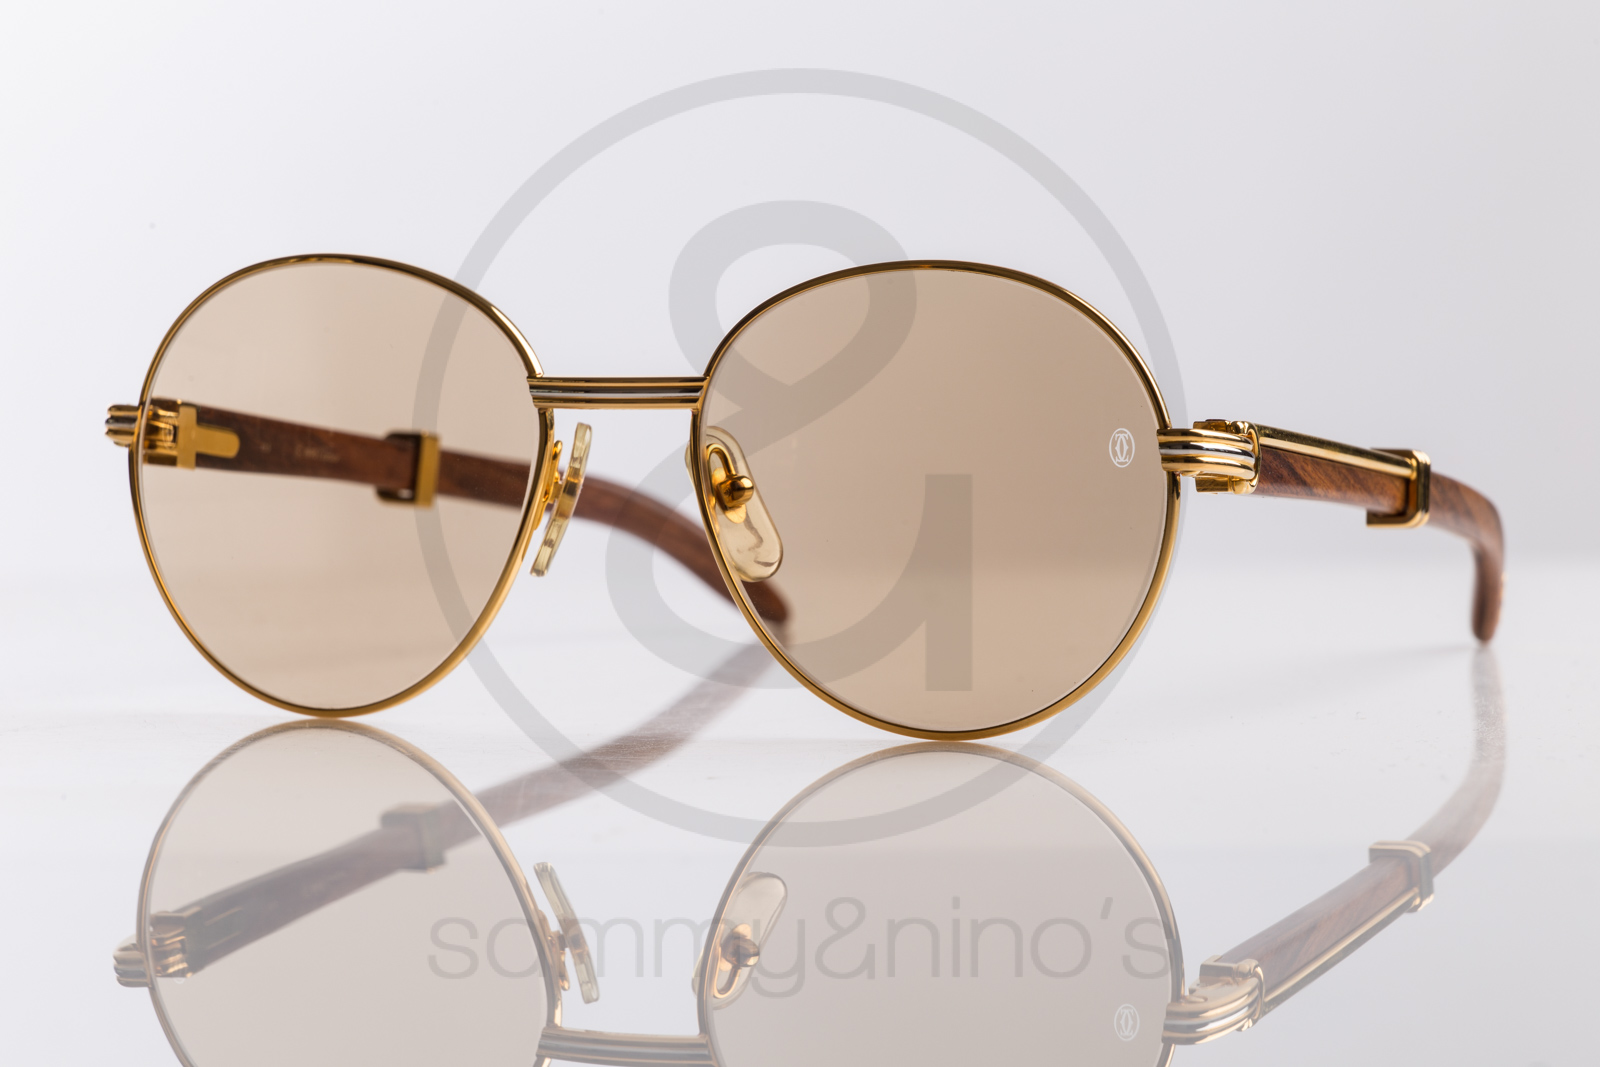 Cartier Gold Frame Sunglasses : Cartier Bagatelle 55-18 Sammy & Ninos Store